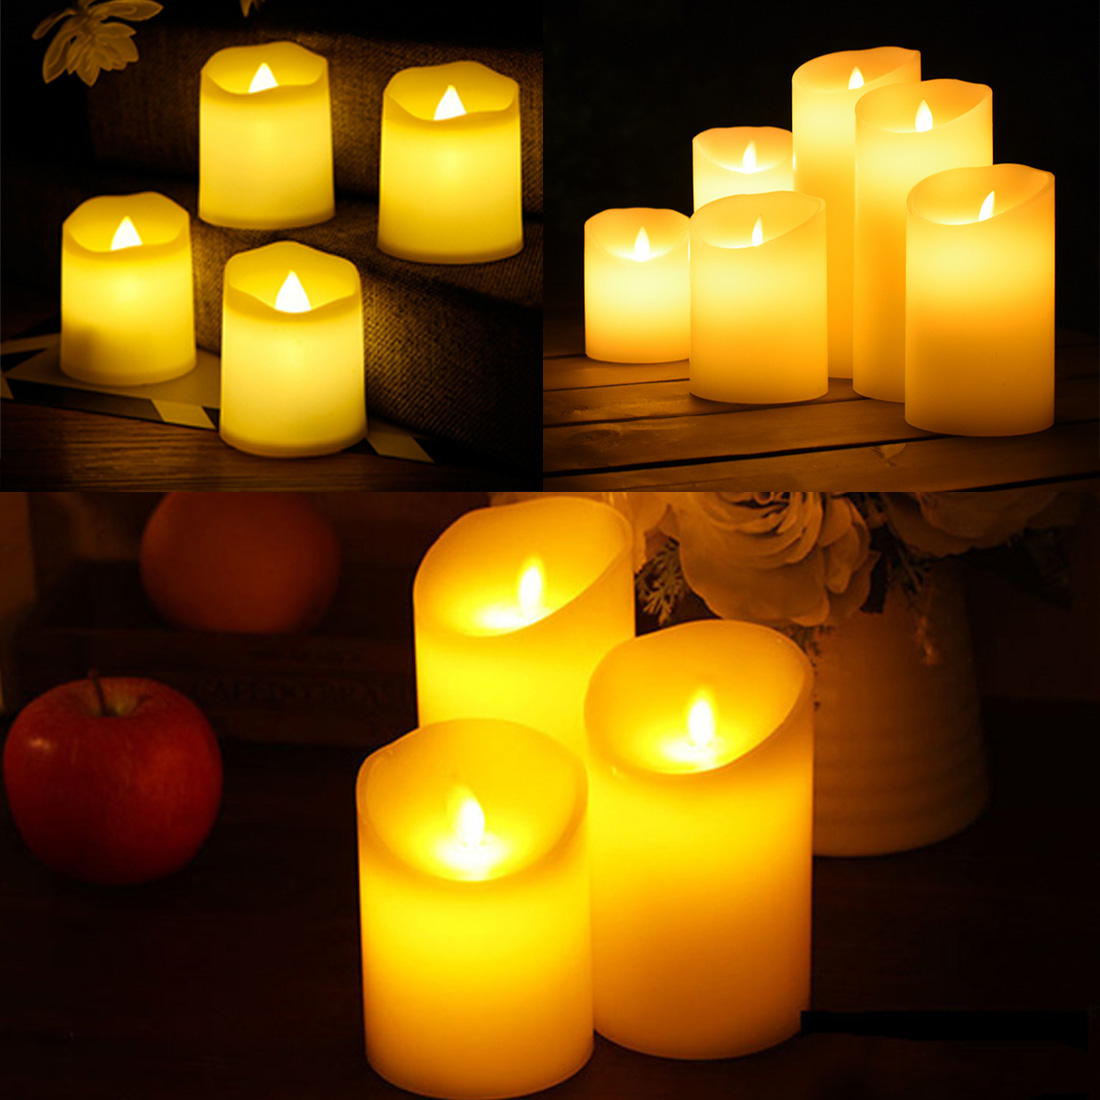 LED Tealight Candles Flameless Electronic Candle Night Lights Lamp Battery Operated For Wedding Birthday Party Christmas Decor